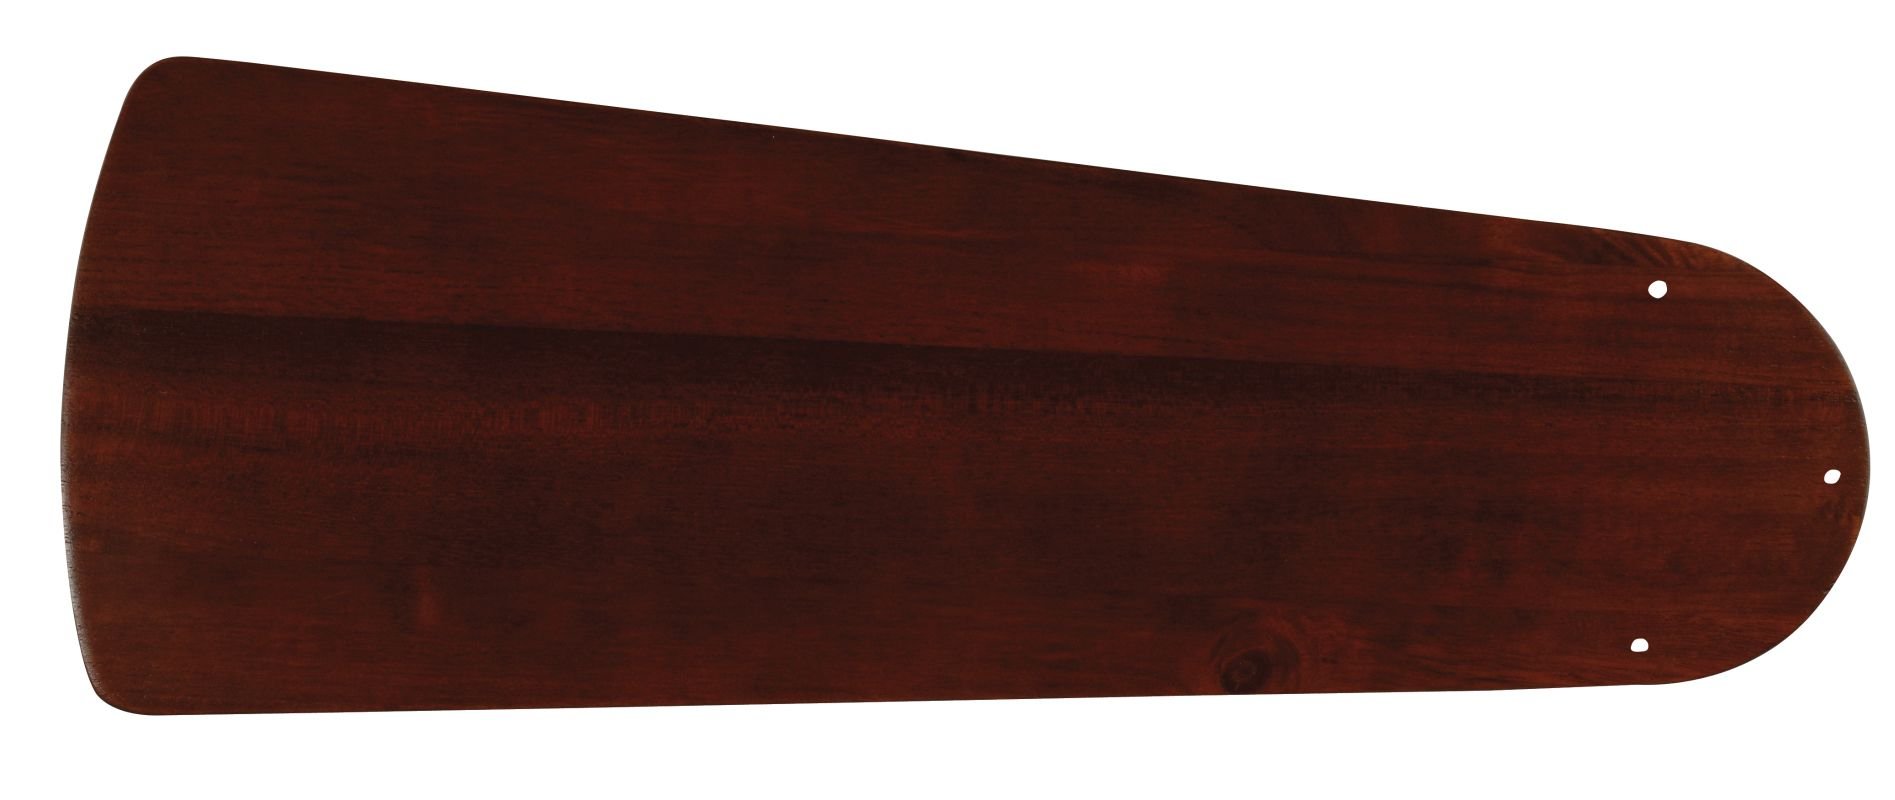 "Craftmade B554P 5 Blade Pack - 54"" Premier Blades Cherry Wood Fan Sale $79.00 ITEM#: 708303 MODEL# :B554P-CH9 UPC#: 647881076634 :"